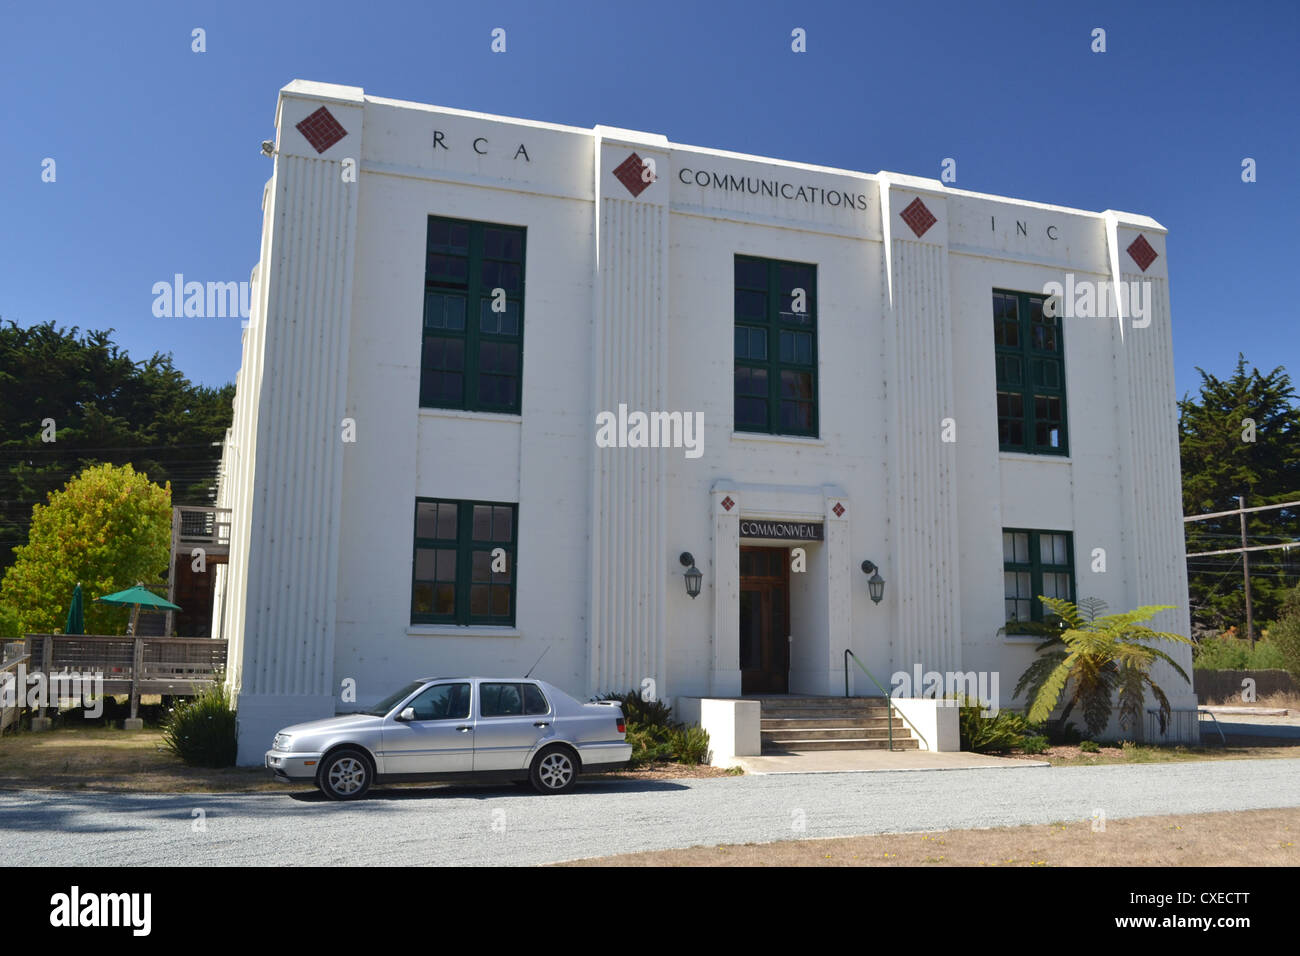 RCA KPH Radio Building at Point Reyes, California - Stock Image